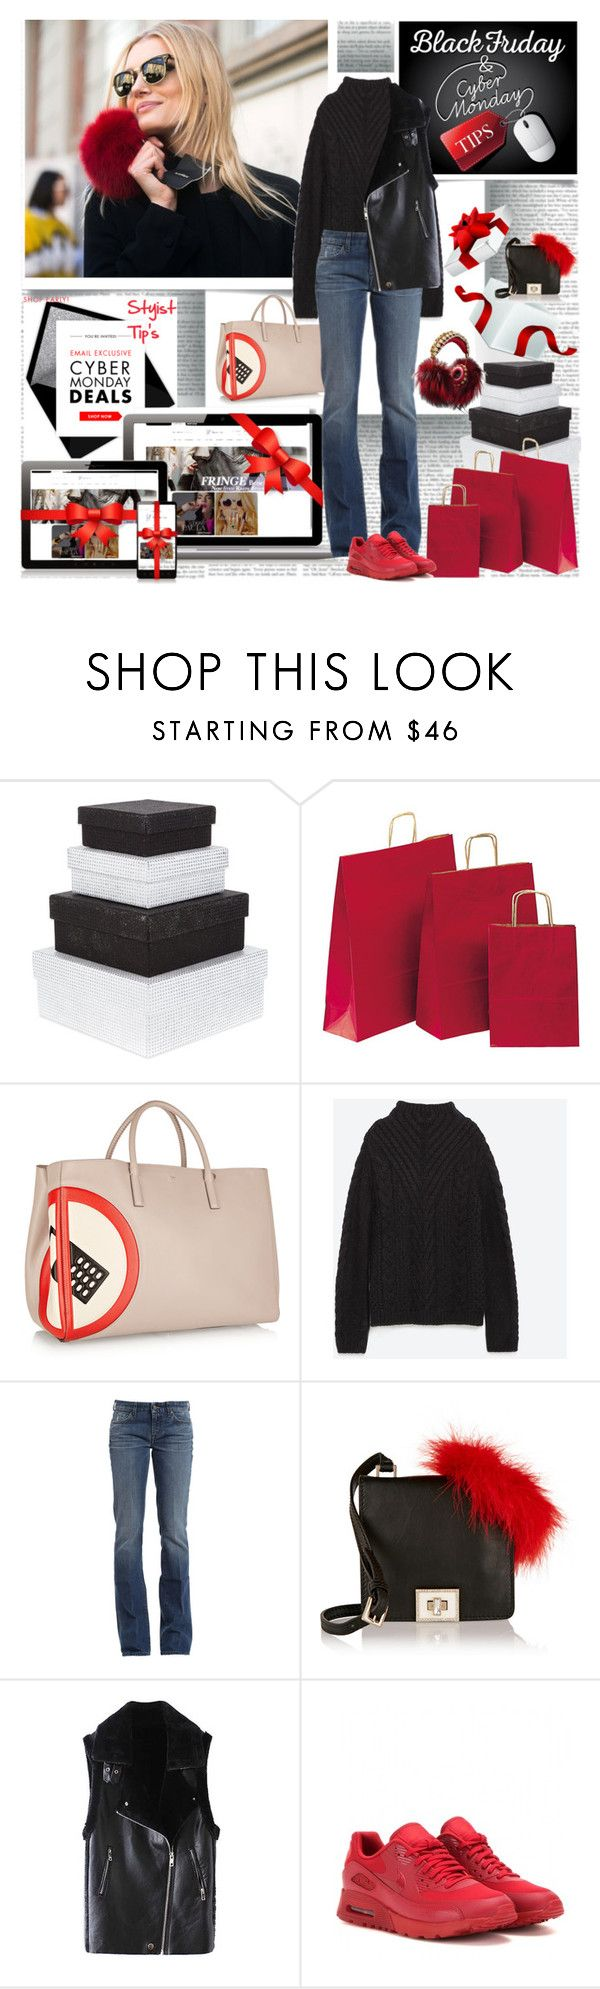 """Cyber Monday Stylist Tip's 1. Shop Early 2.Stick to the List"" by stylepersonal ❤ liked on Polyvore featuring Anya Hindmarch, Zara, 7 For All Mankind, Valentino, NIKE, blackfriday and cybermonday"